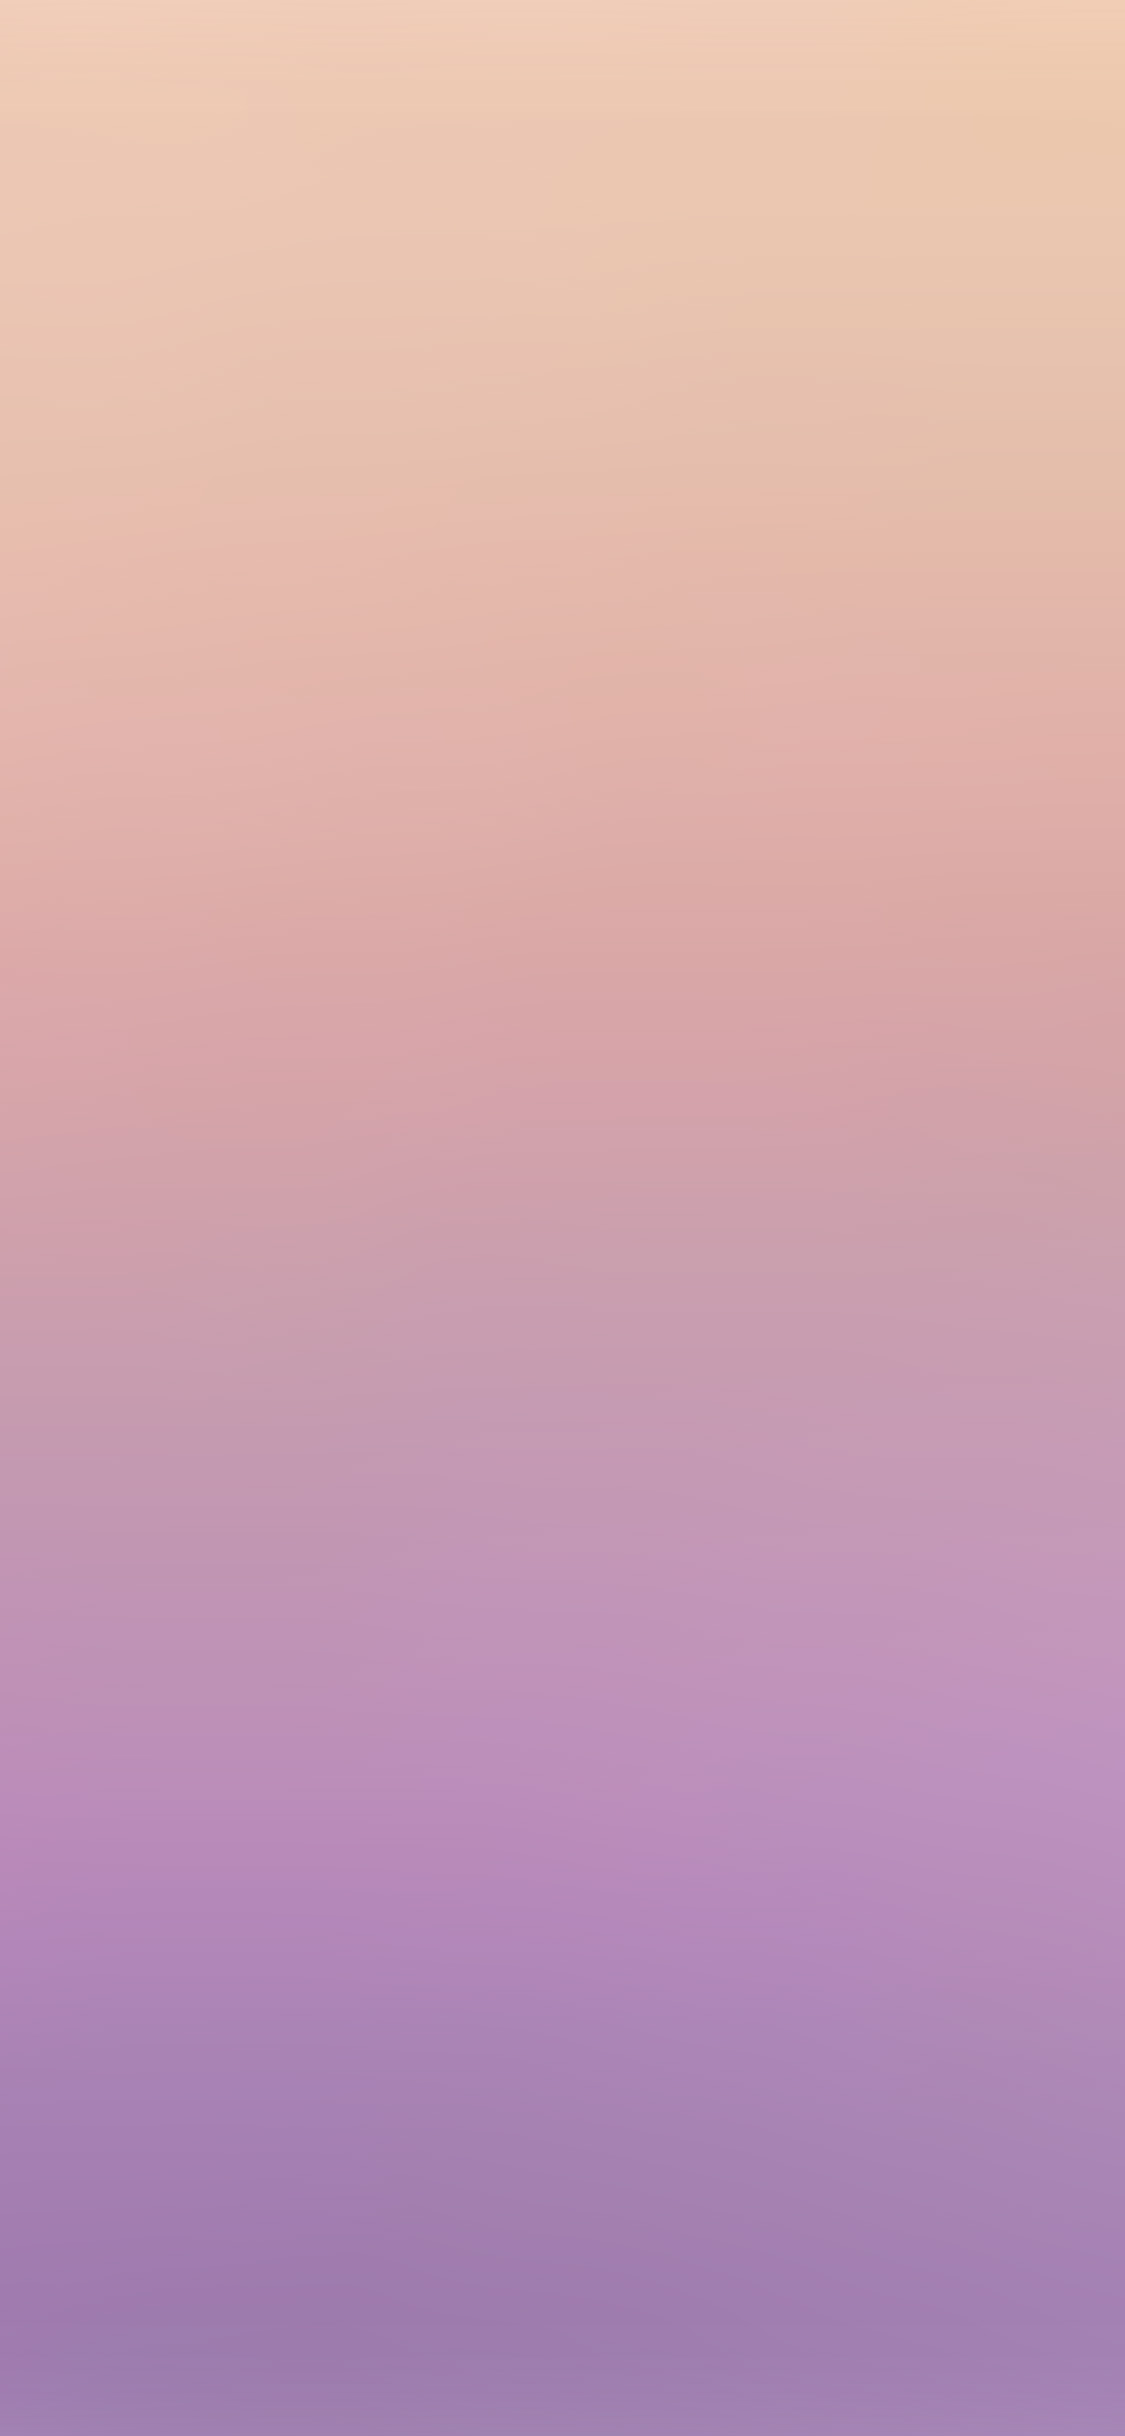 papers.co sl84 pastel pink purple blur gradation 41 iphone wallpaper